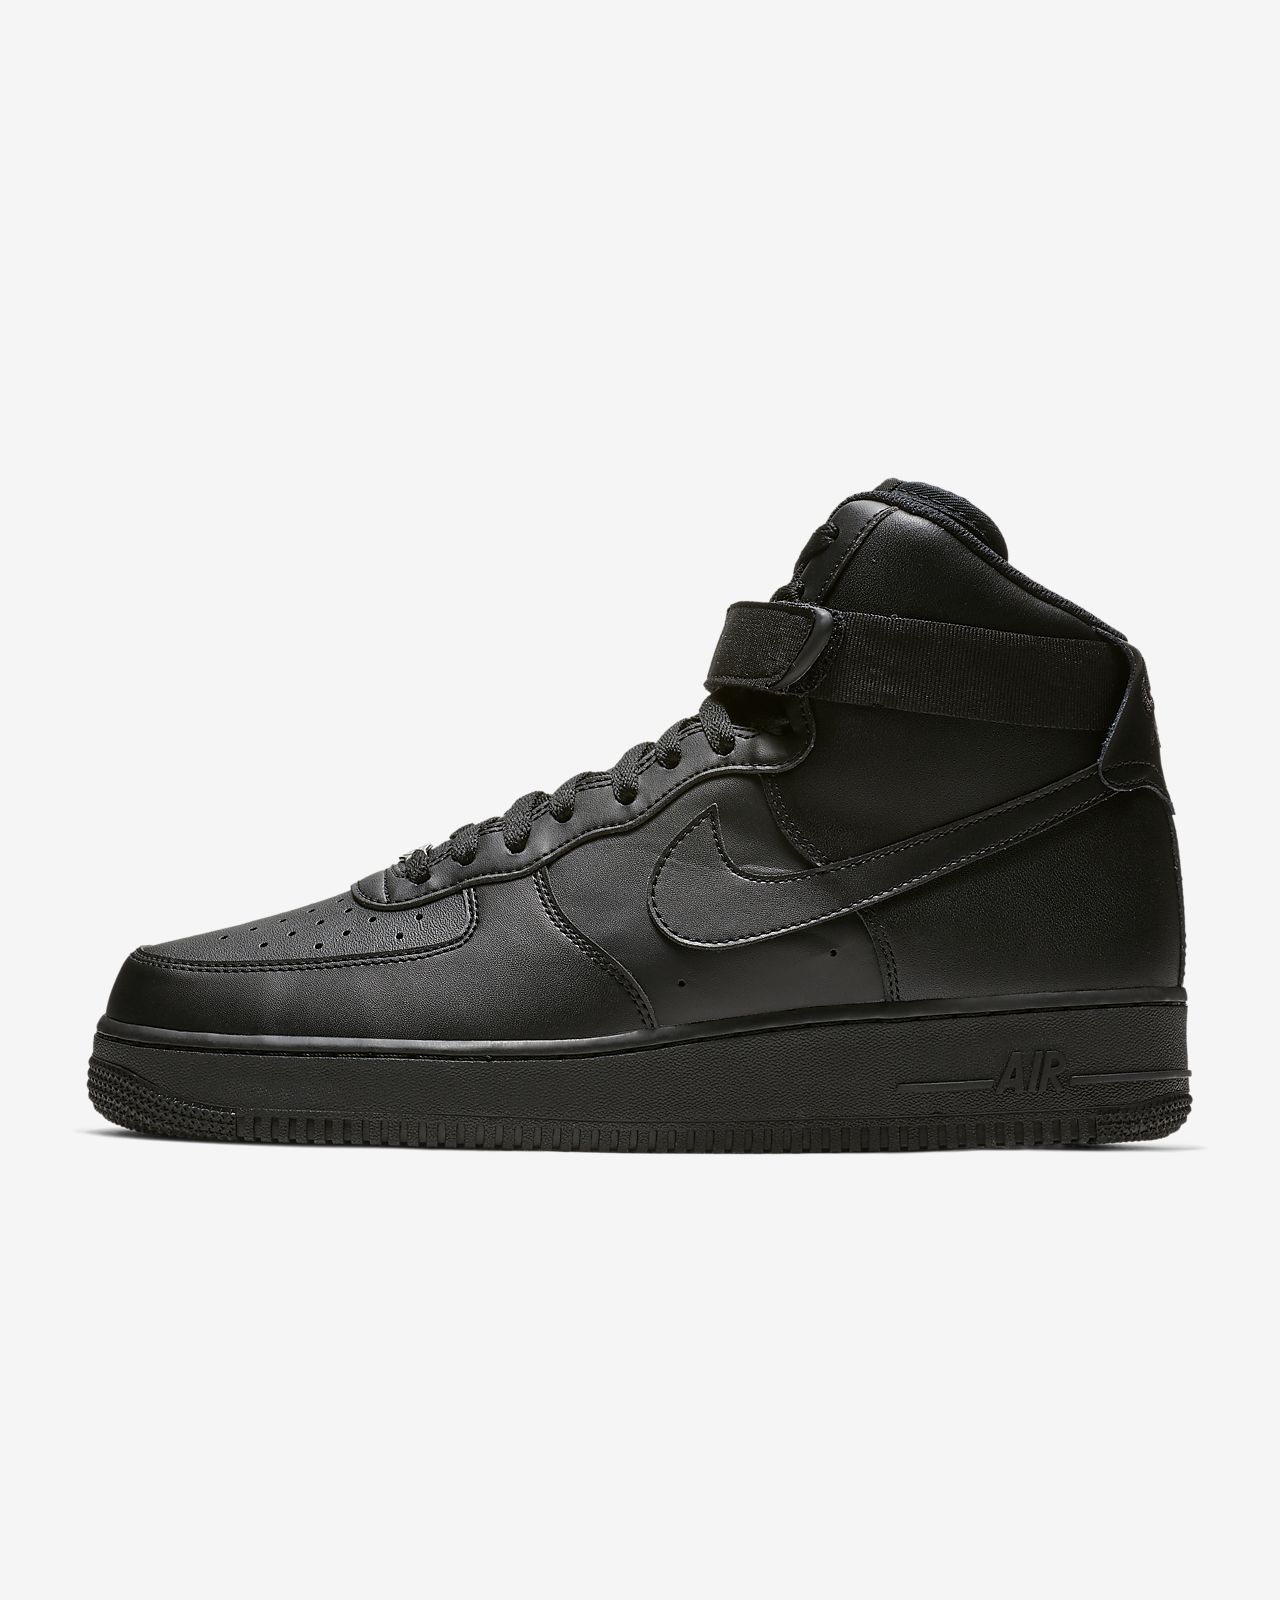 933c0be85f6 Nike Air Force 1 High 07 Men s Shoe. Nike.com